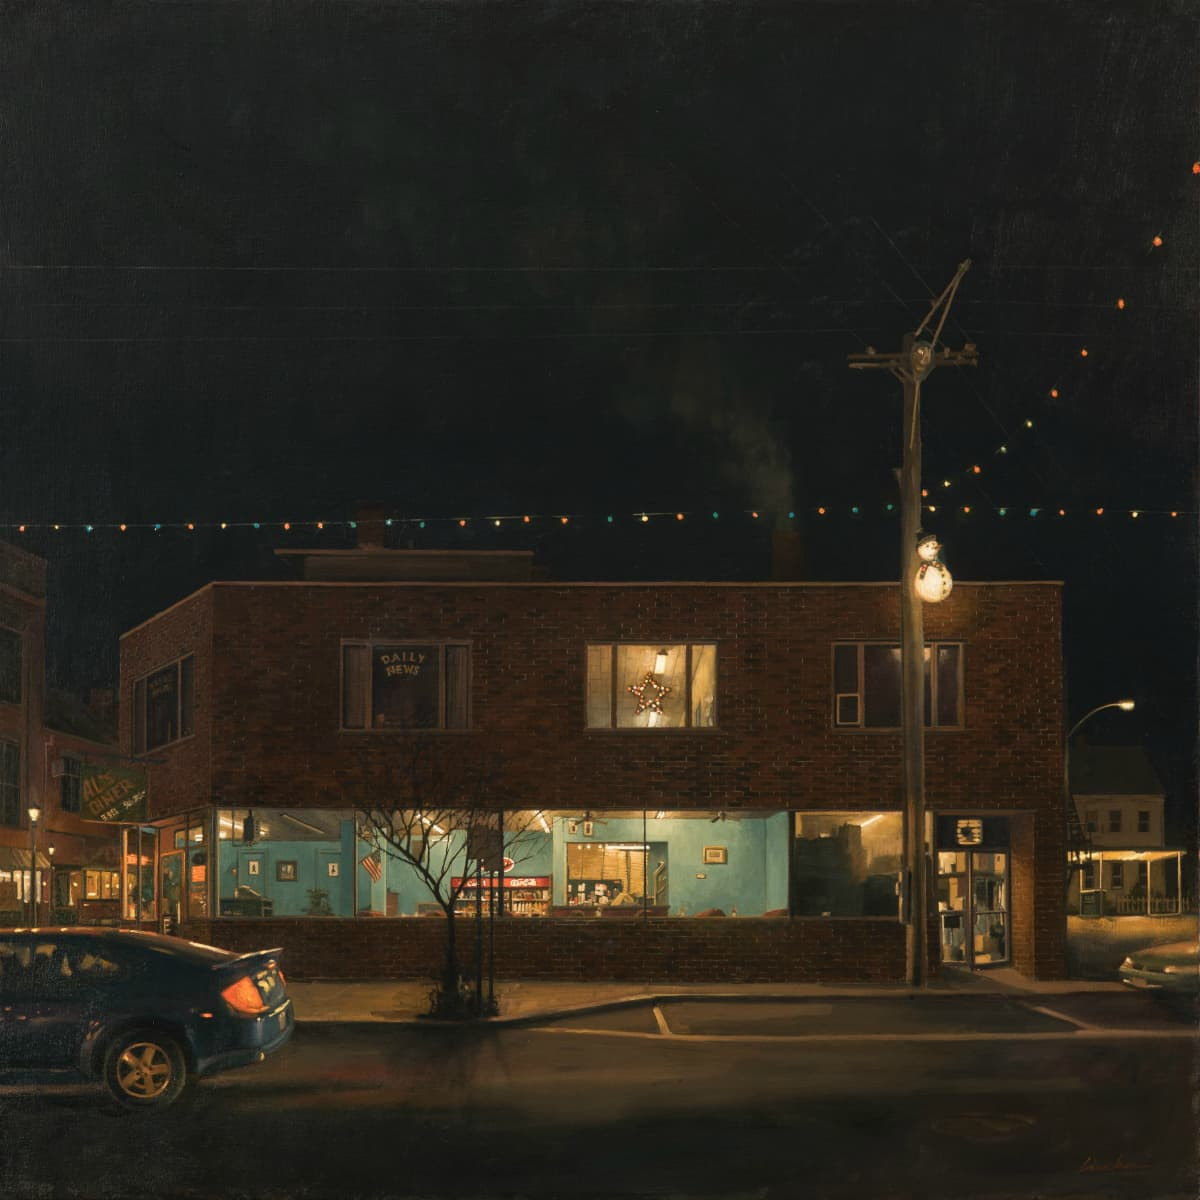 TAKEOUT, Linden Frederick, Night Stories